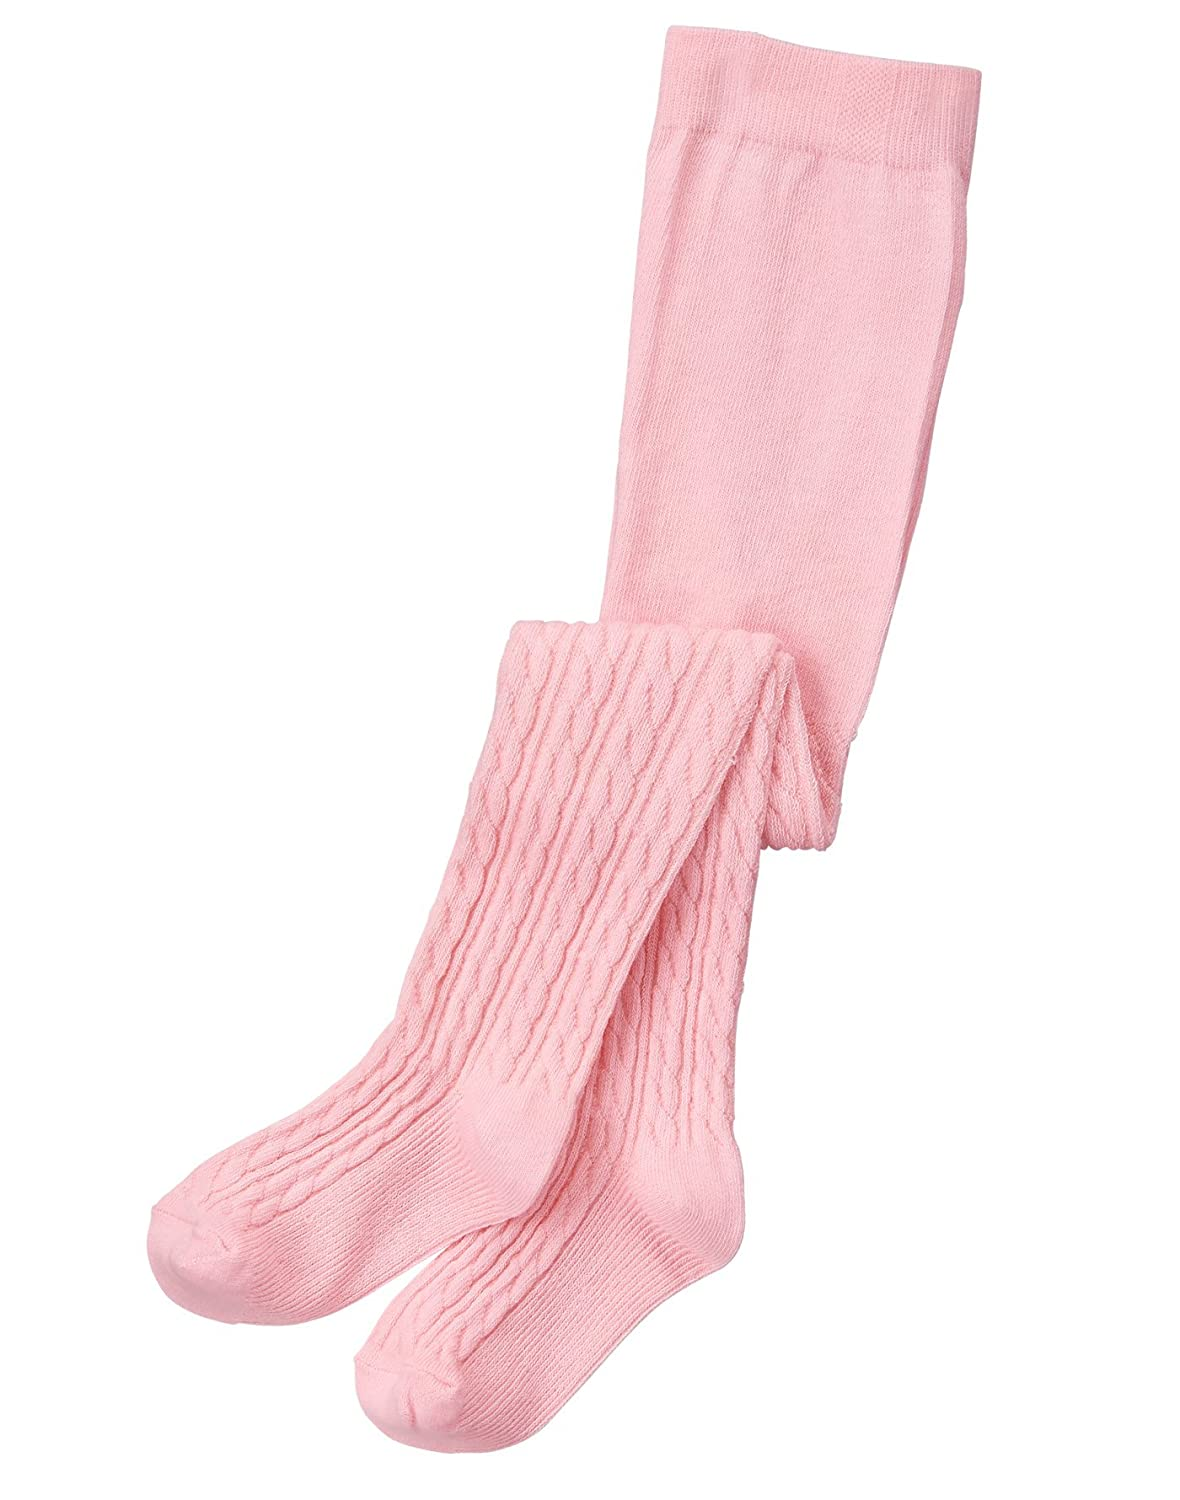 a4400603b1284 Amazon.com: Gymboree Girls' Toddler Cable Knit Tights: Clothing